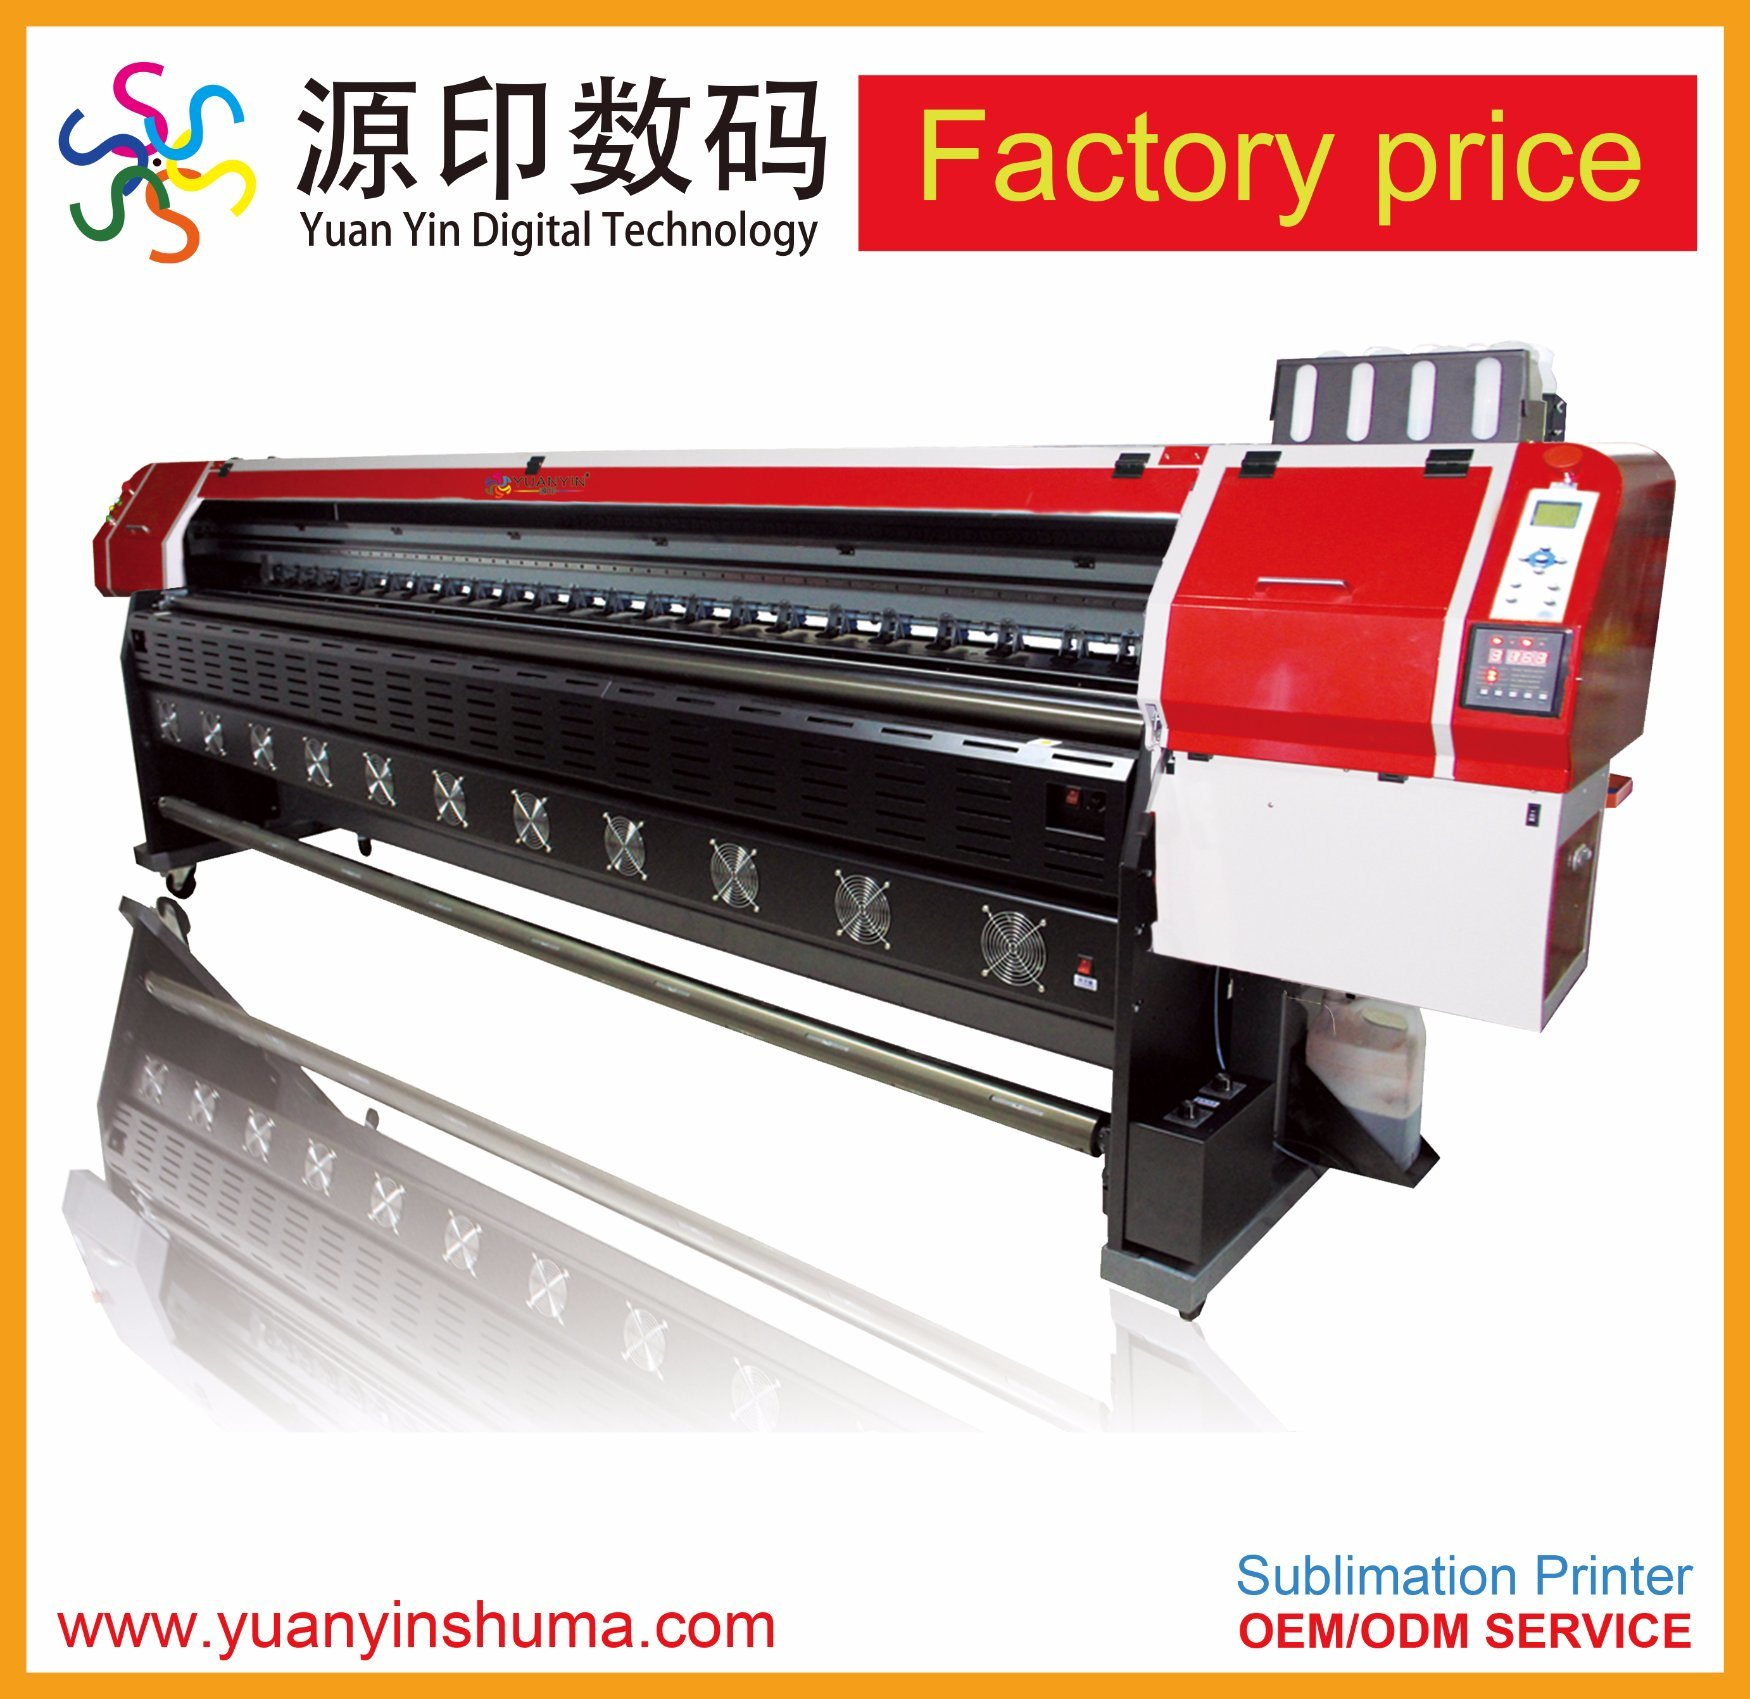 [Hot Item] Low Price Factory Supplier 1 8meter Width Textile Printer